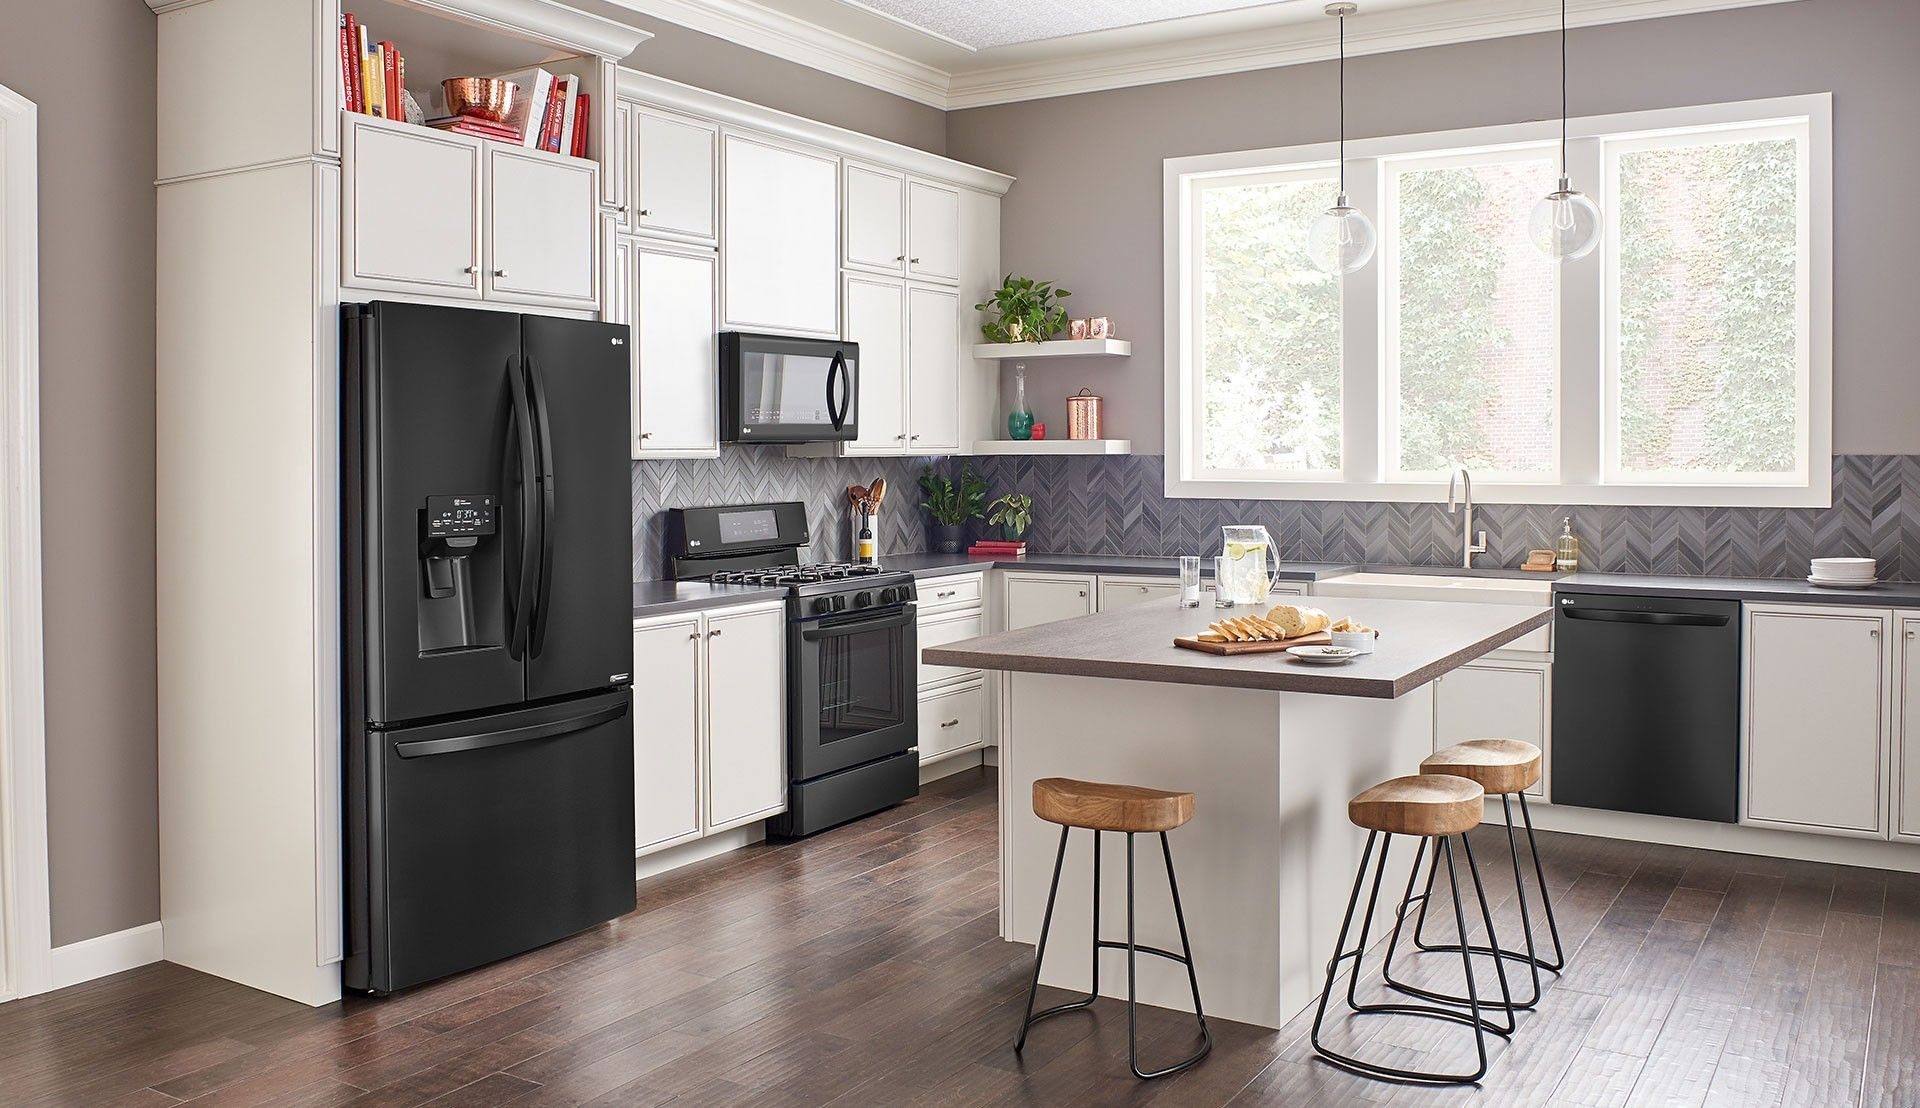 Image Result For Matte Black Appliances With White Shaker Cabinets Black Appliances Kitchen White Cabinets Black Appliances Kitchen Cabinet Colors